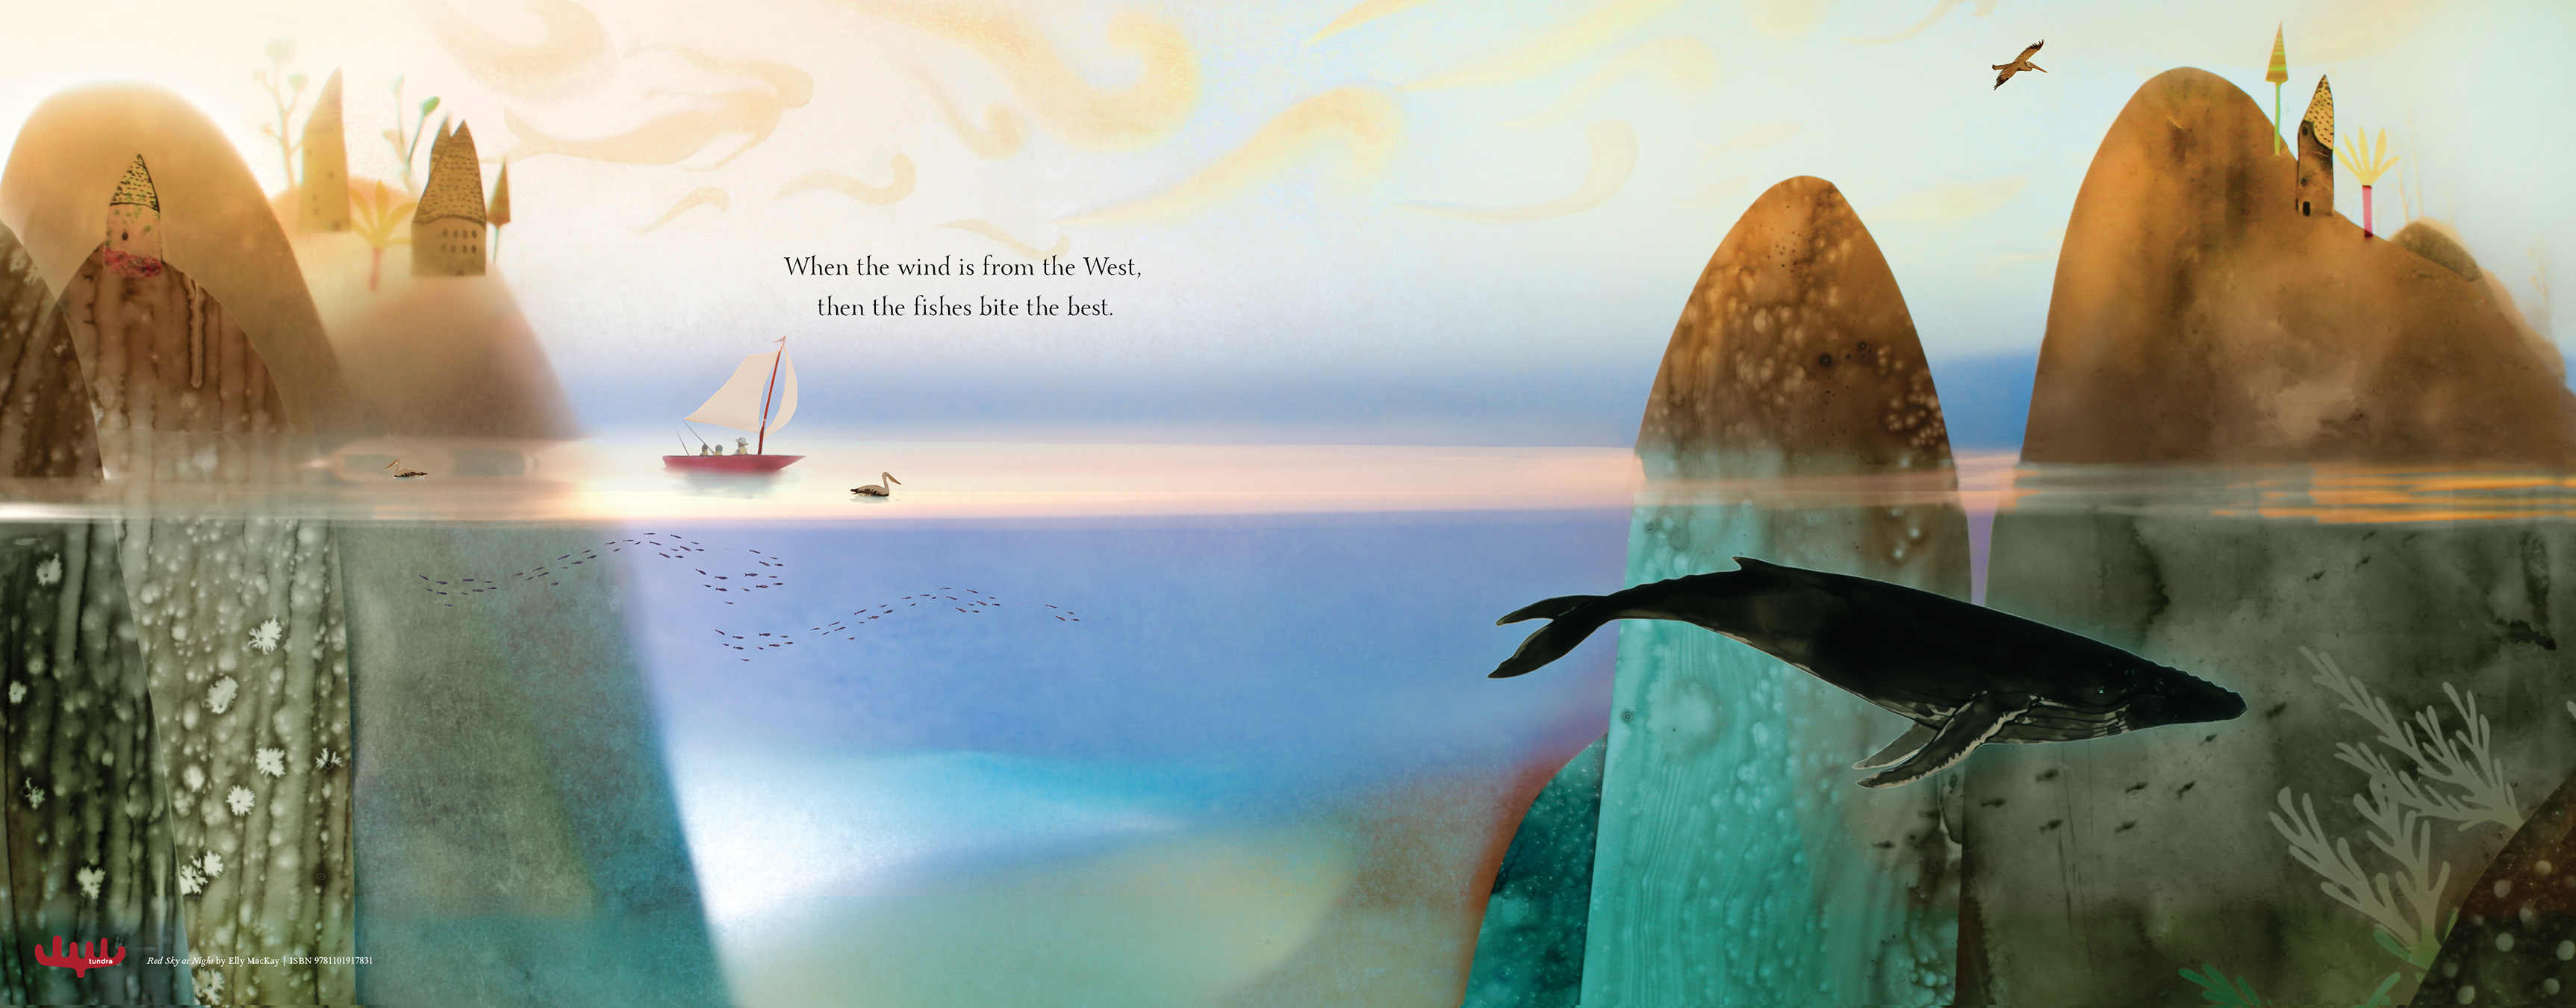 celebrate-picture-books-picture-book-review-red-sky-at-night-wind-from-west